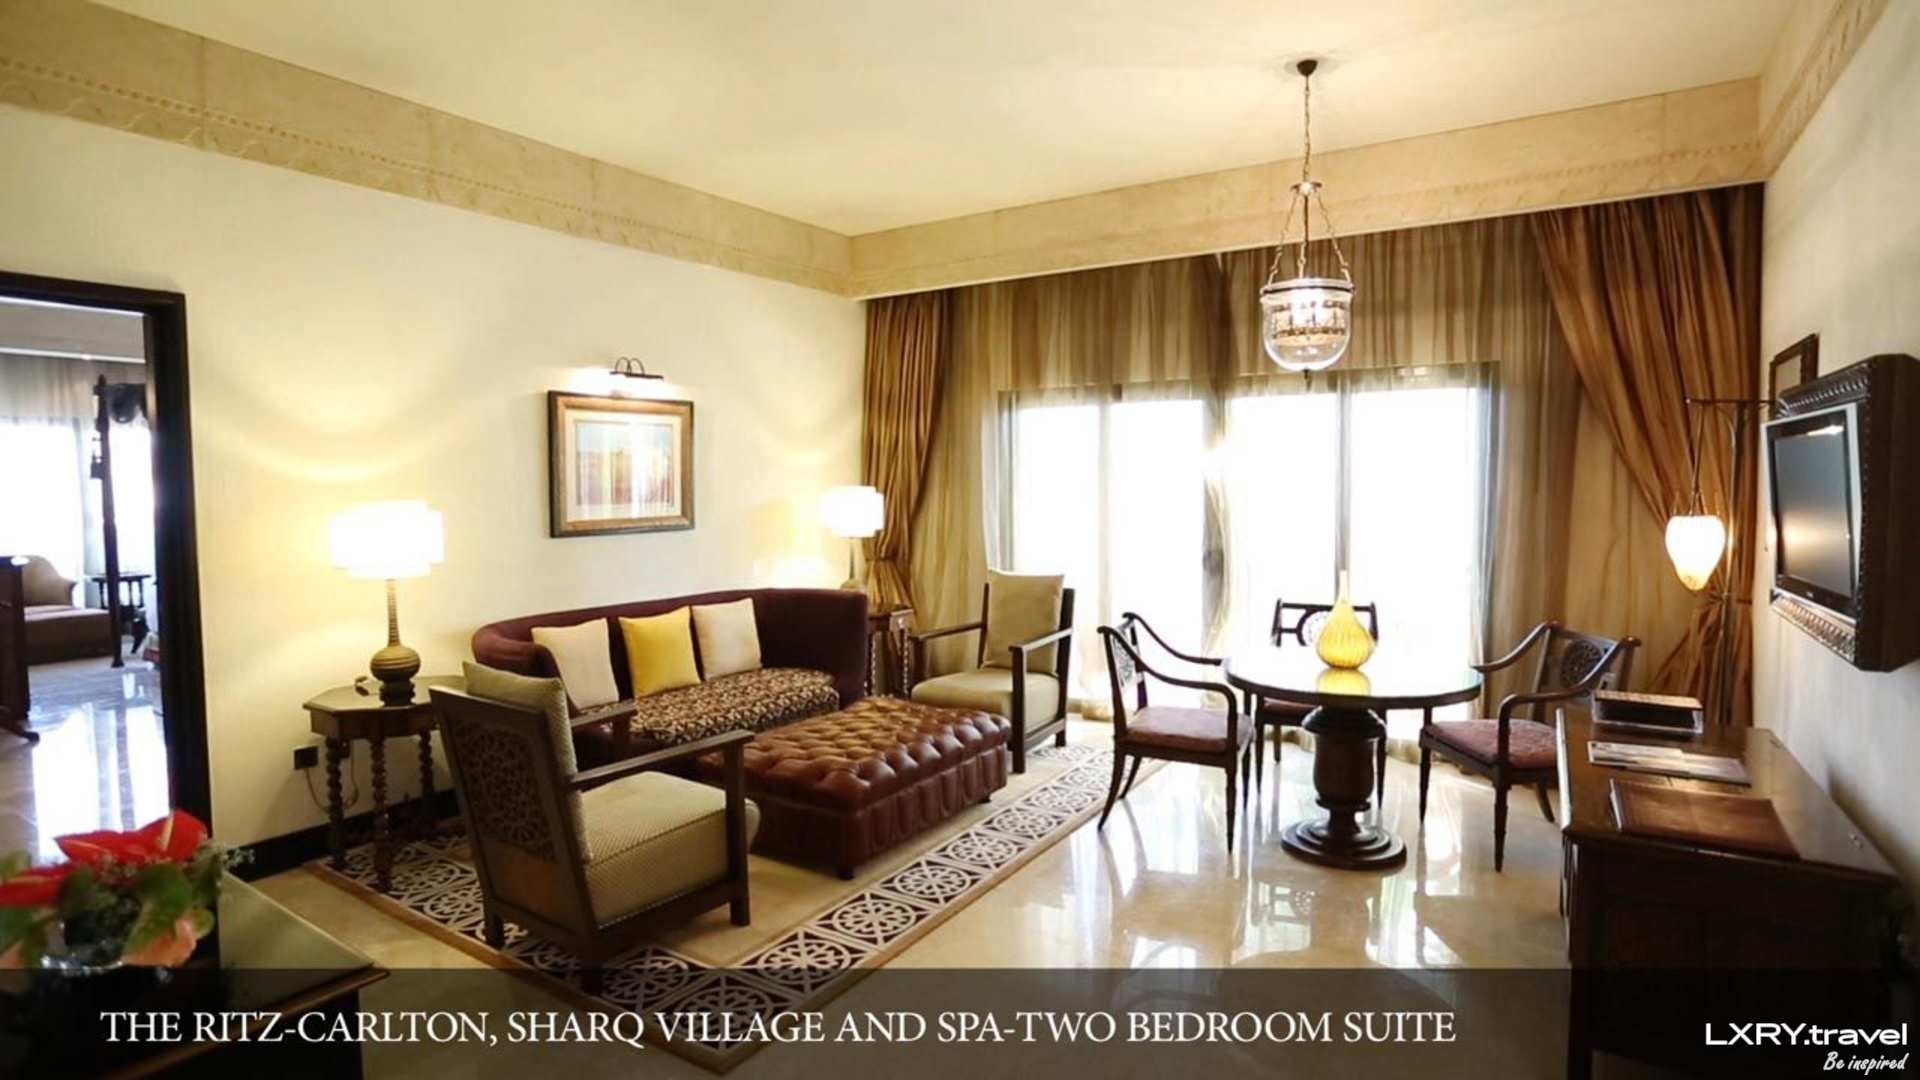 Sharq Village and Spa Hotel Operated by The Ritz-Carlton 2/69